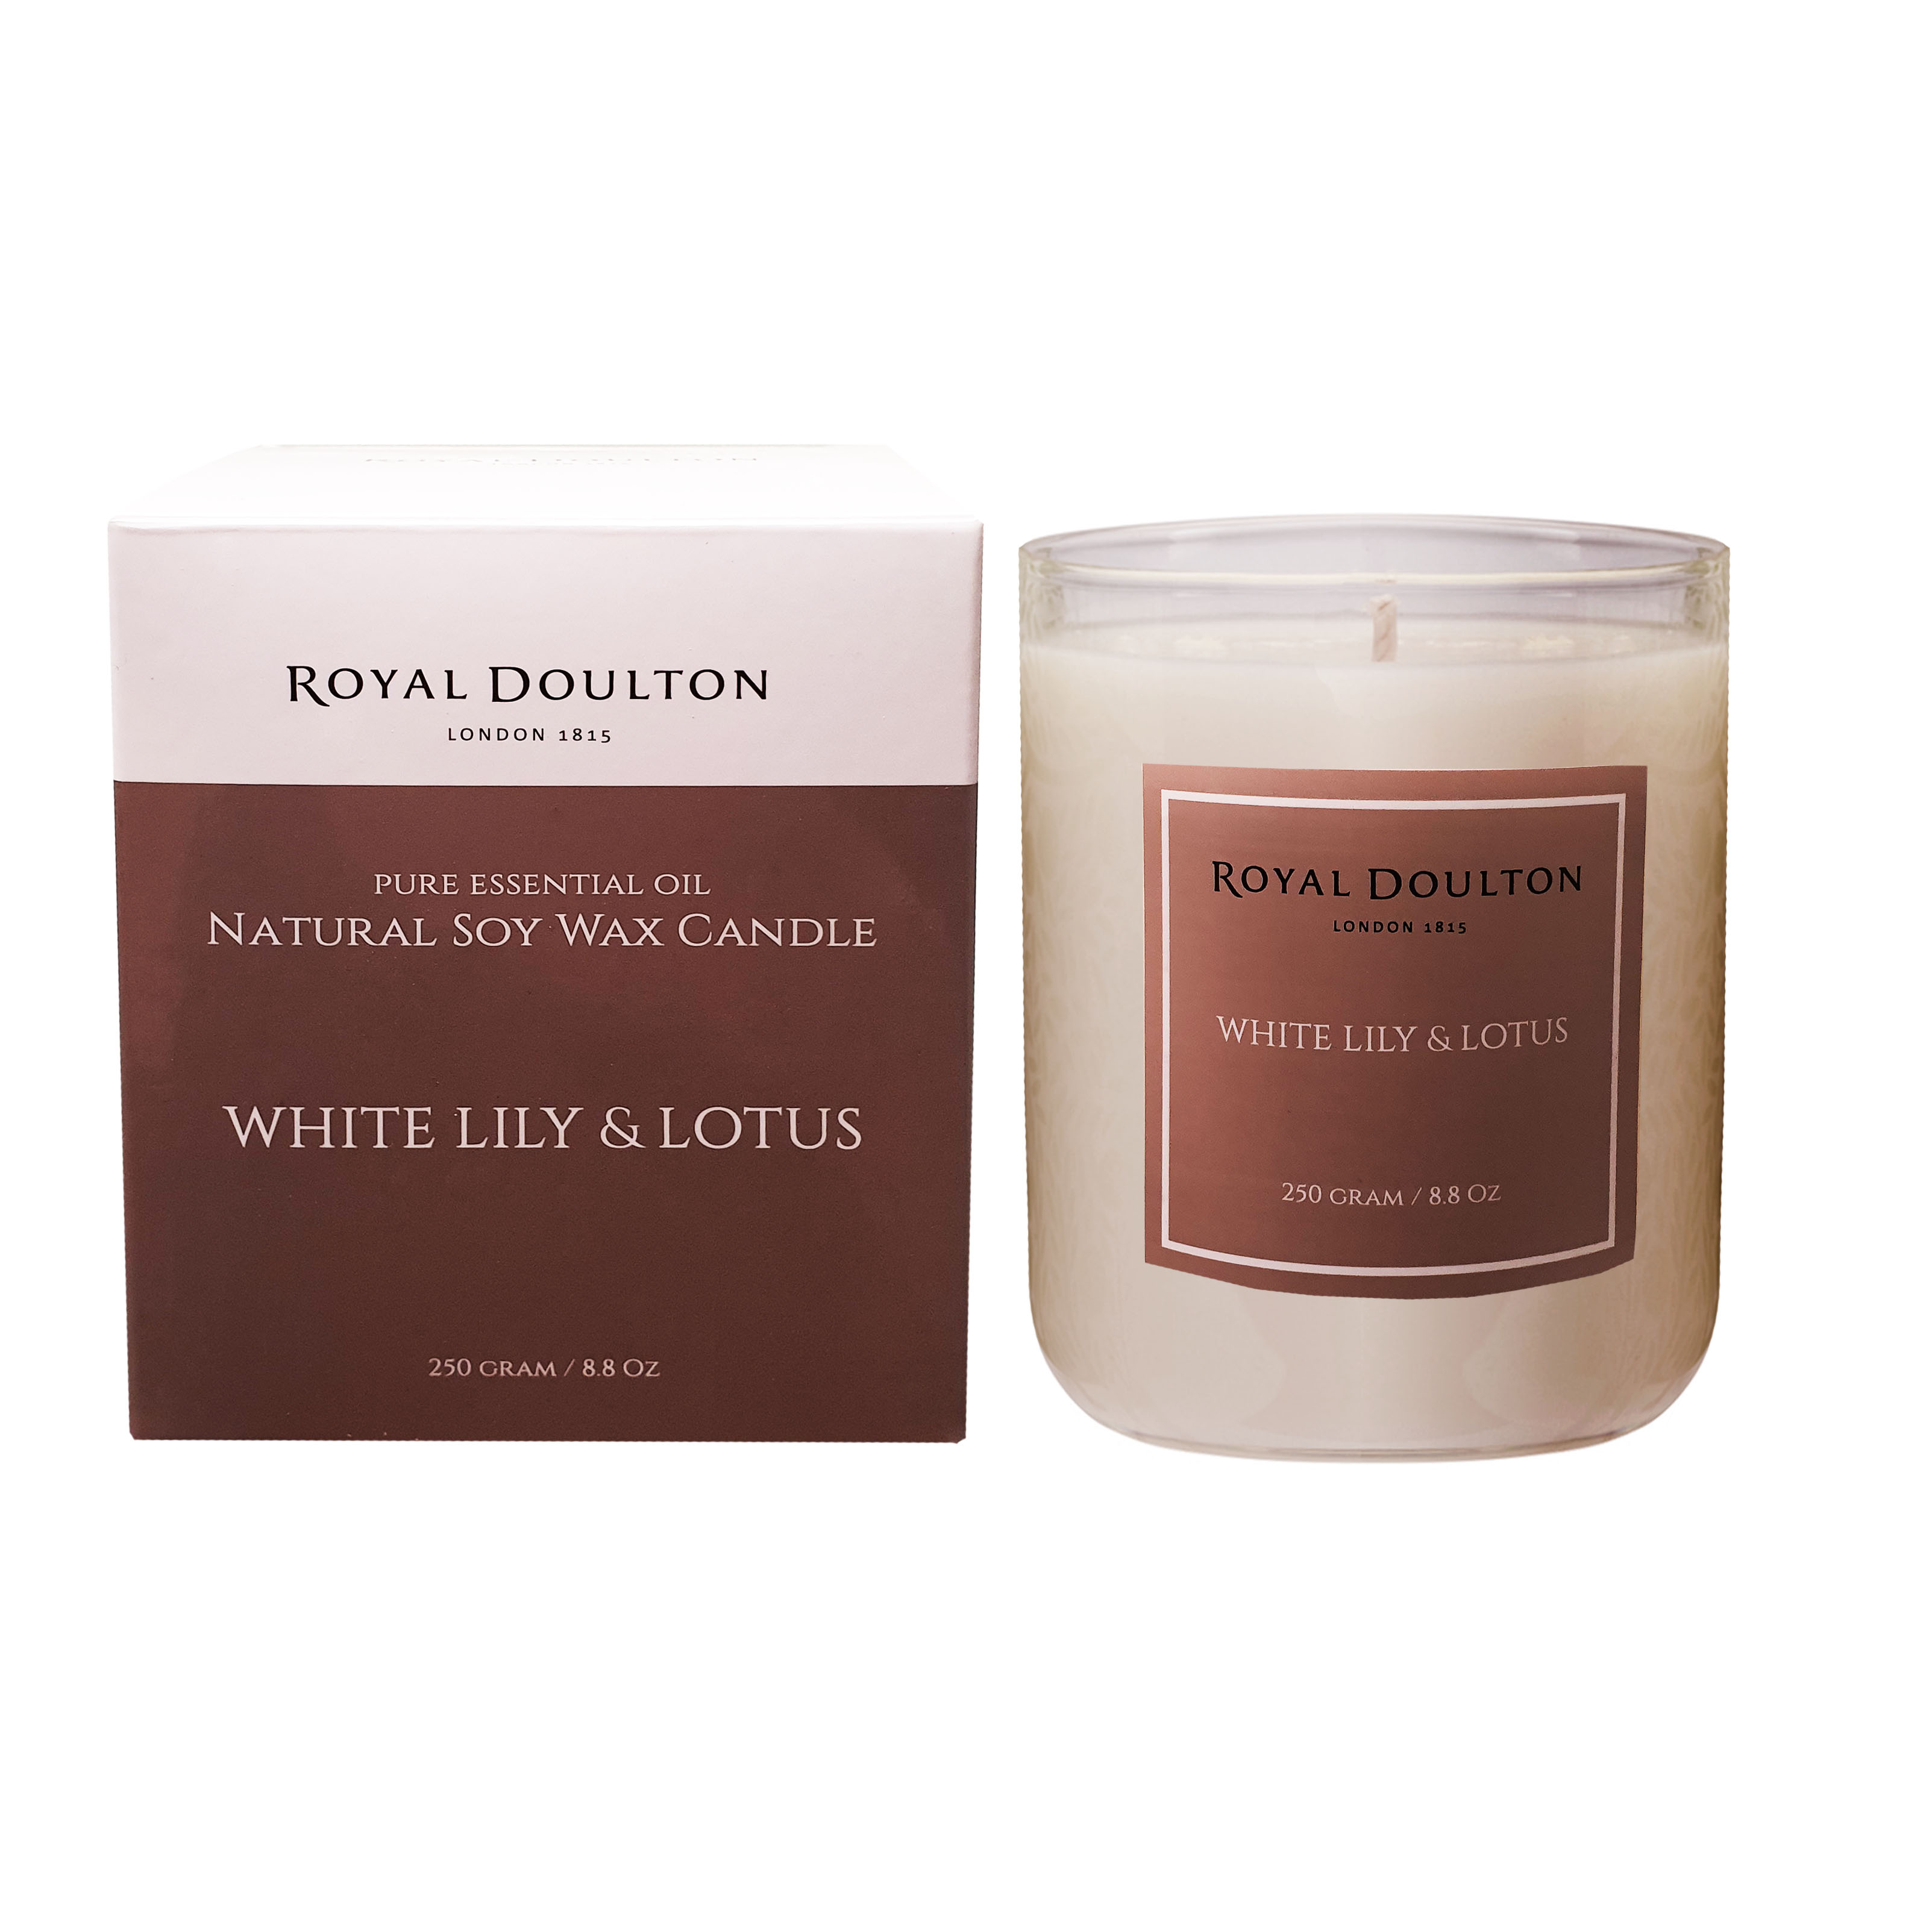 Royal Doulton White Lily & Lotus Soy Wax Candle